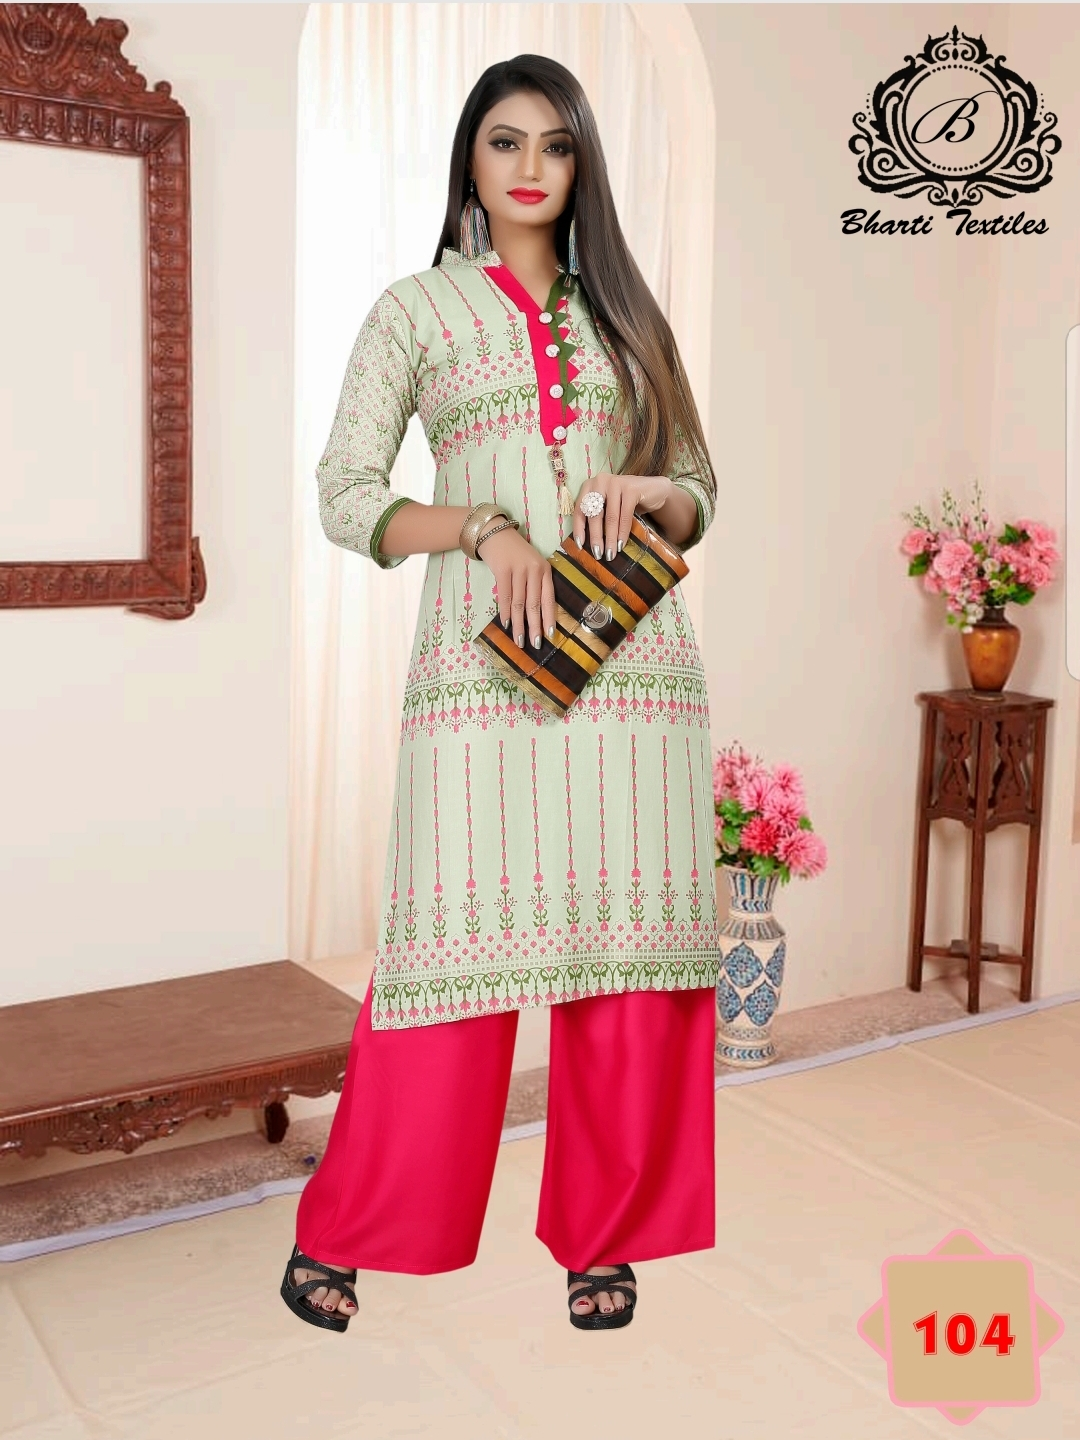 Bharti-Textile-Lovely-10